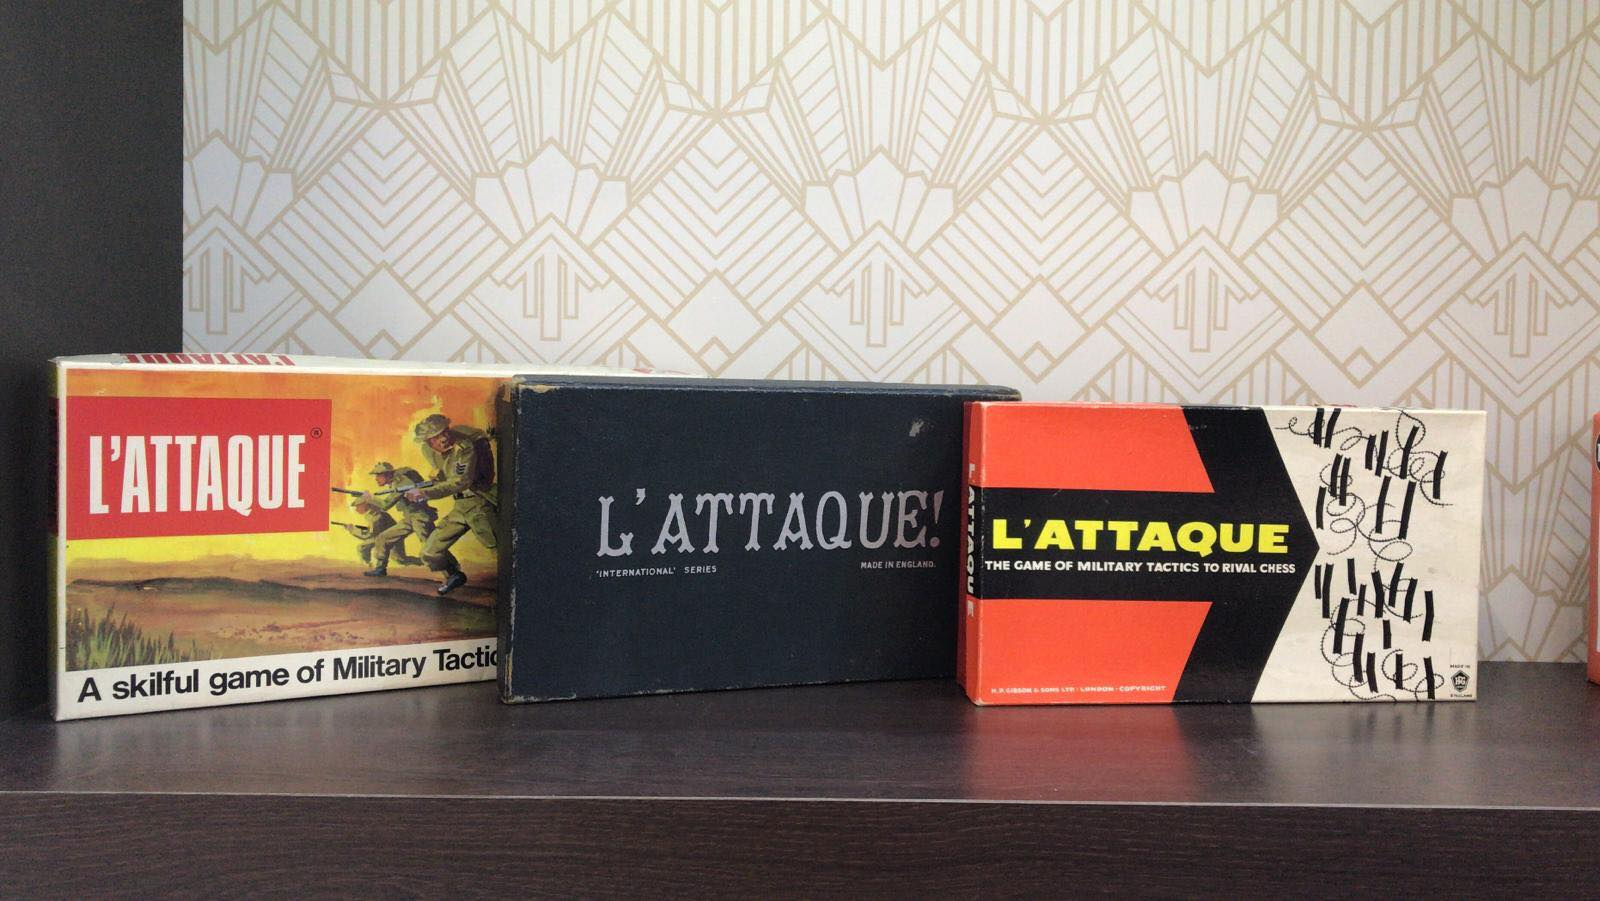 L'Attaque - Previous Versions